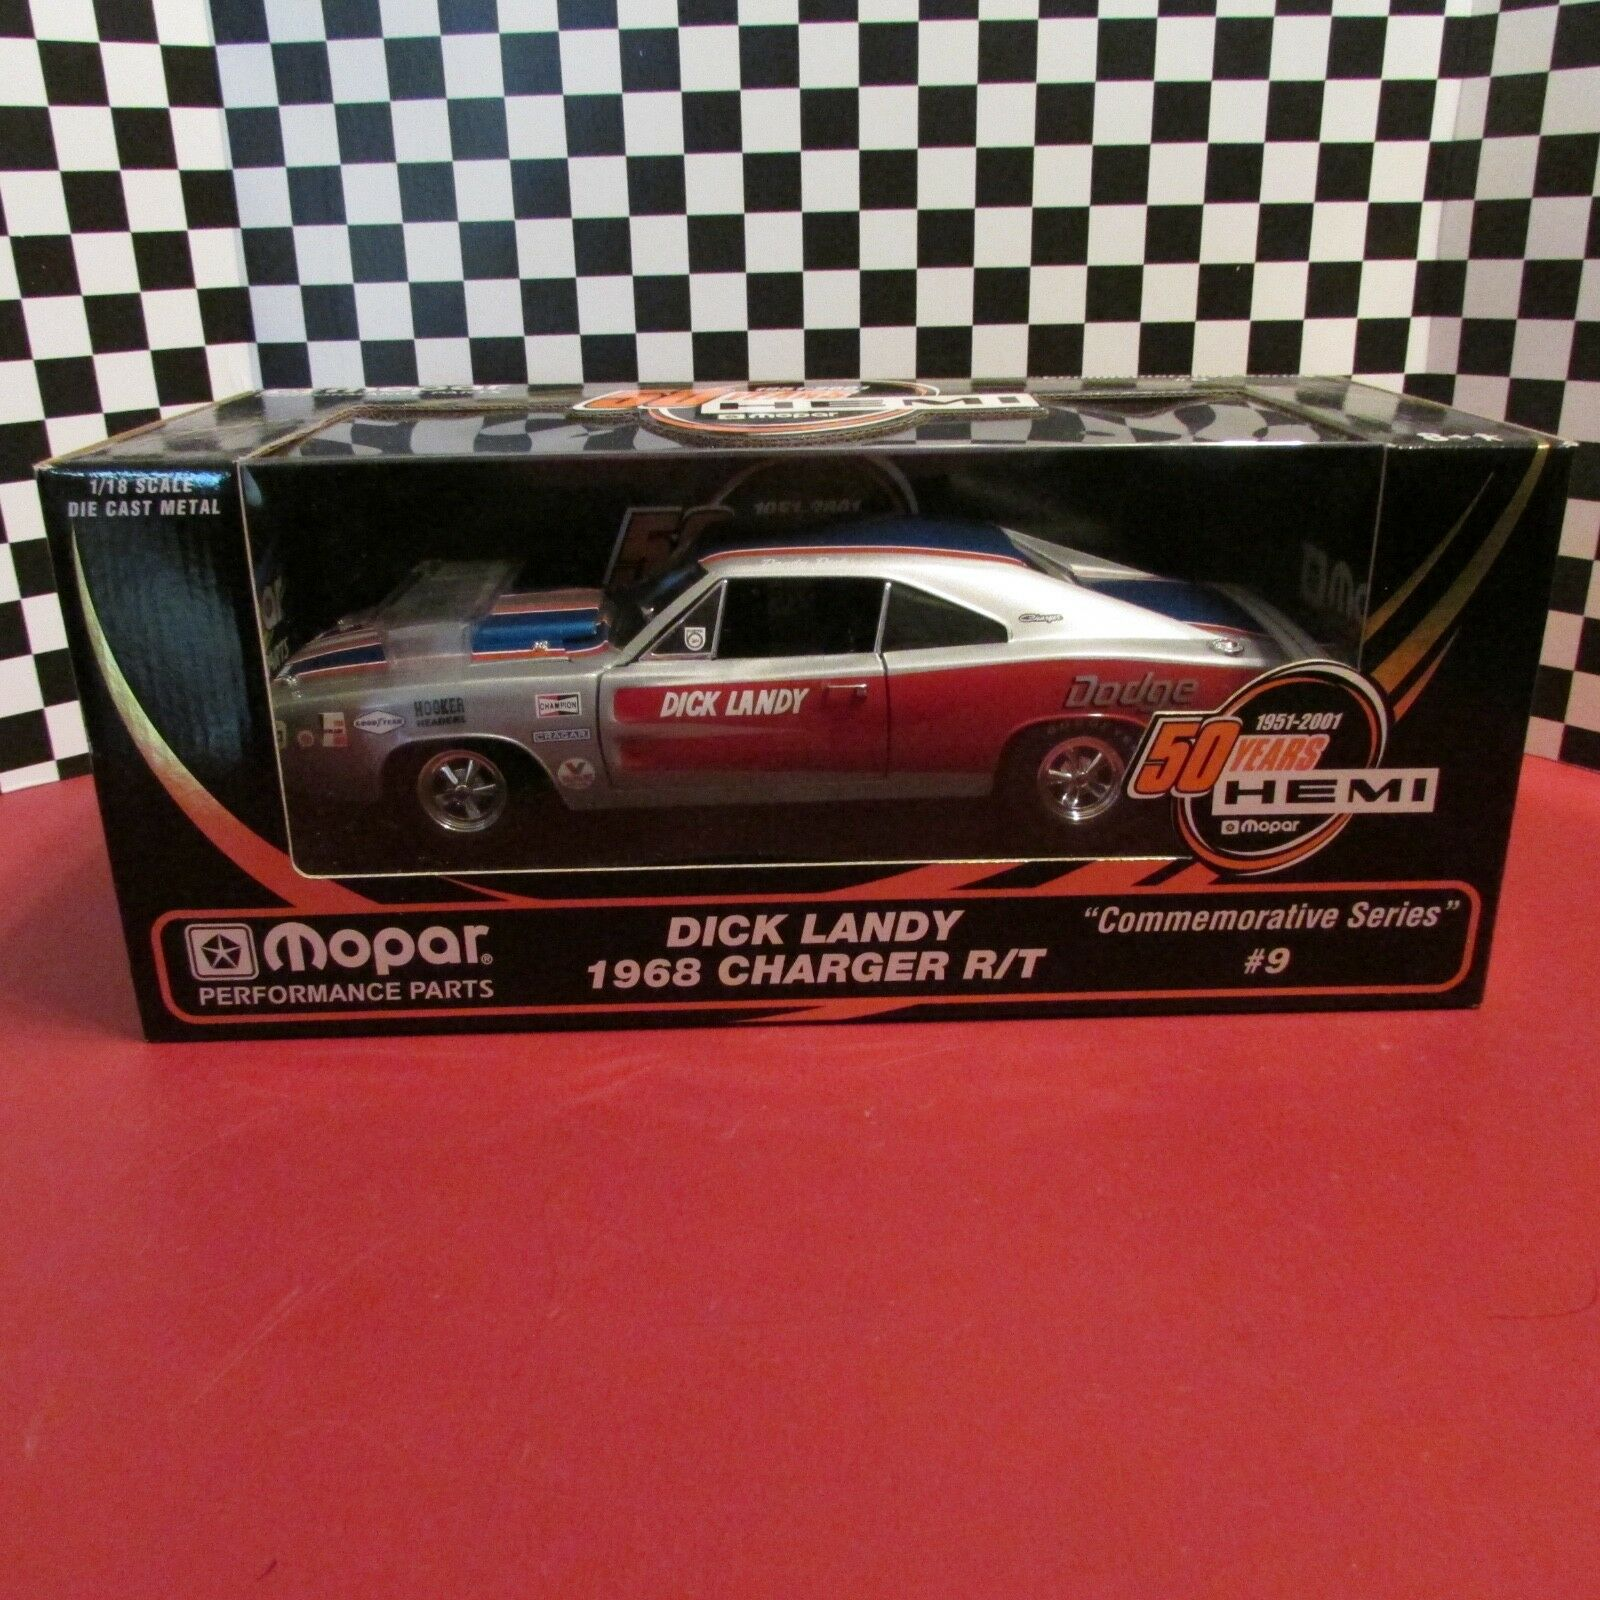 Ertl,1968 Dodge Charger R T,  Dick Landy  50 yrs.HEMI,issue  9,1 18 sc. diecast